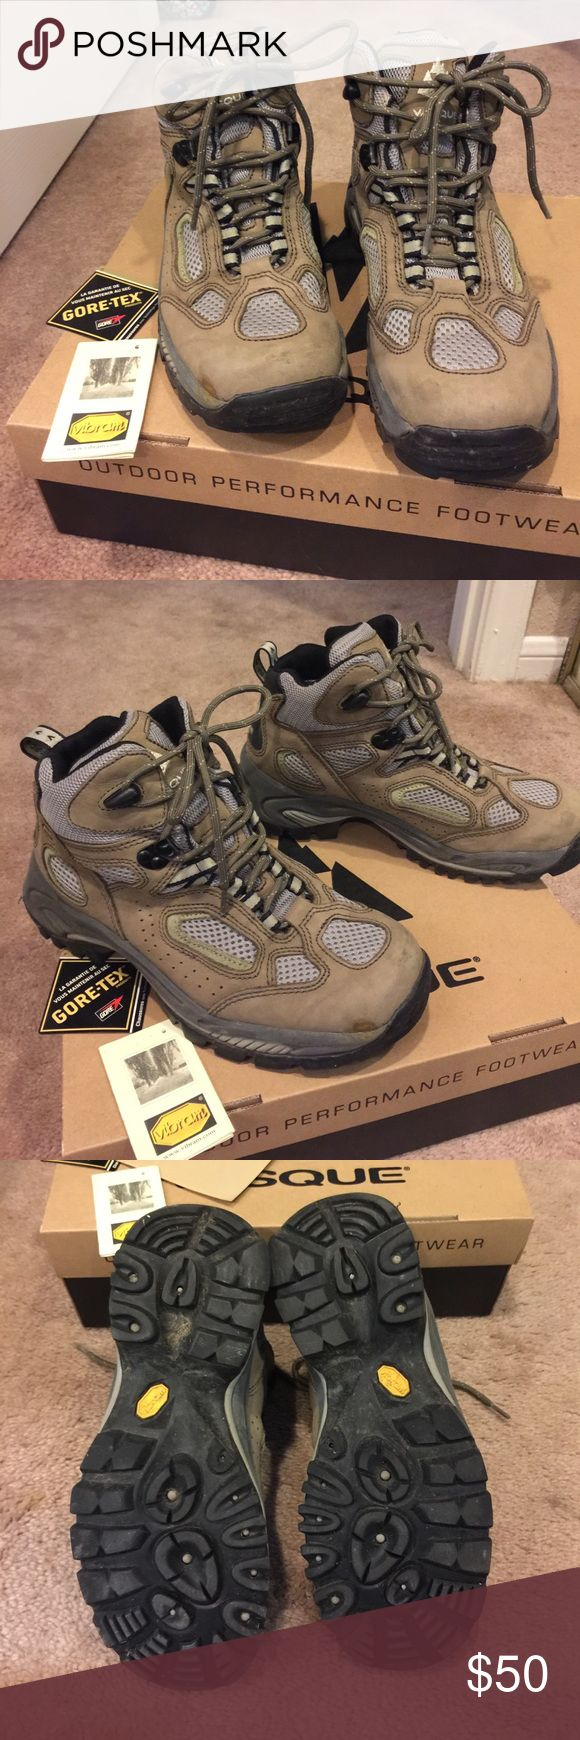 Vasque Hiking Boots Worn for two trips. Some discoloration on toes as pictured. Vibrant bottoms. Goretex coated. VERY sturdy. Still some dirt on them here and there, but that's what they're for! Vasque Shoes Lace Up Boots